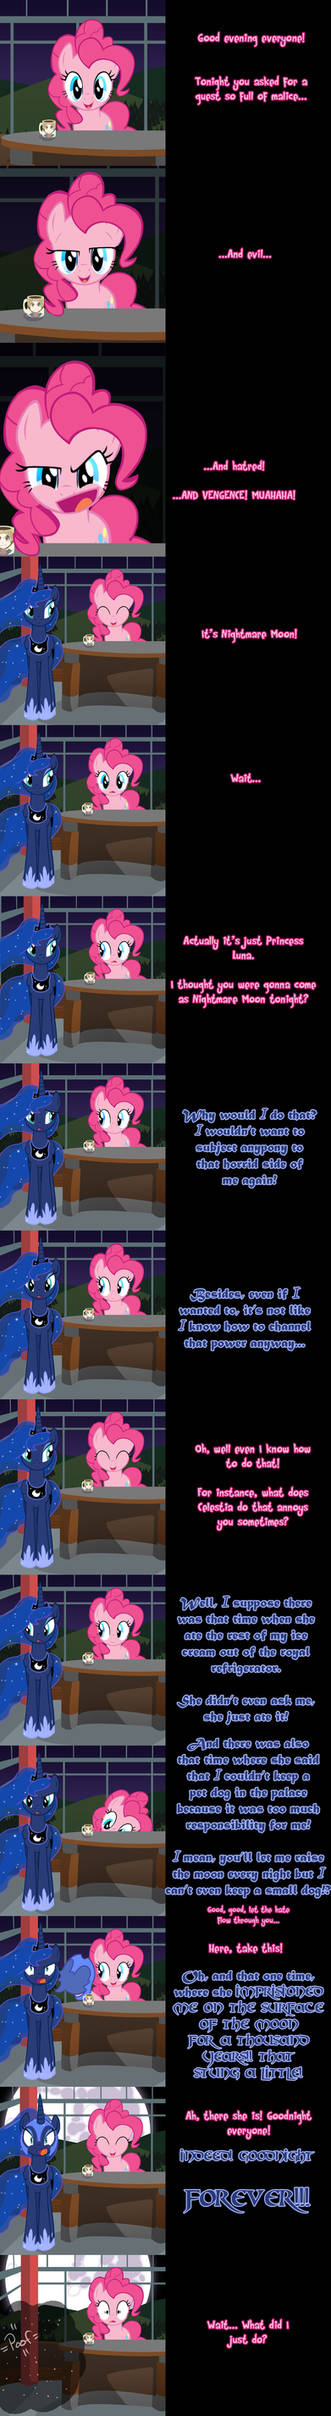 Pinkie Says Goodnight - Evil Equines